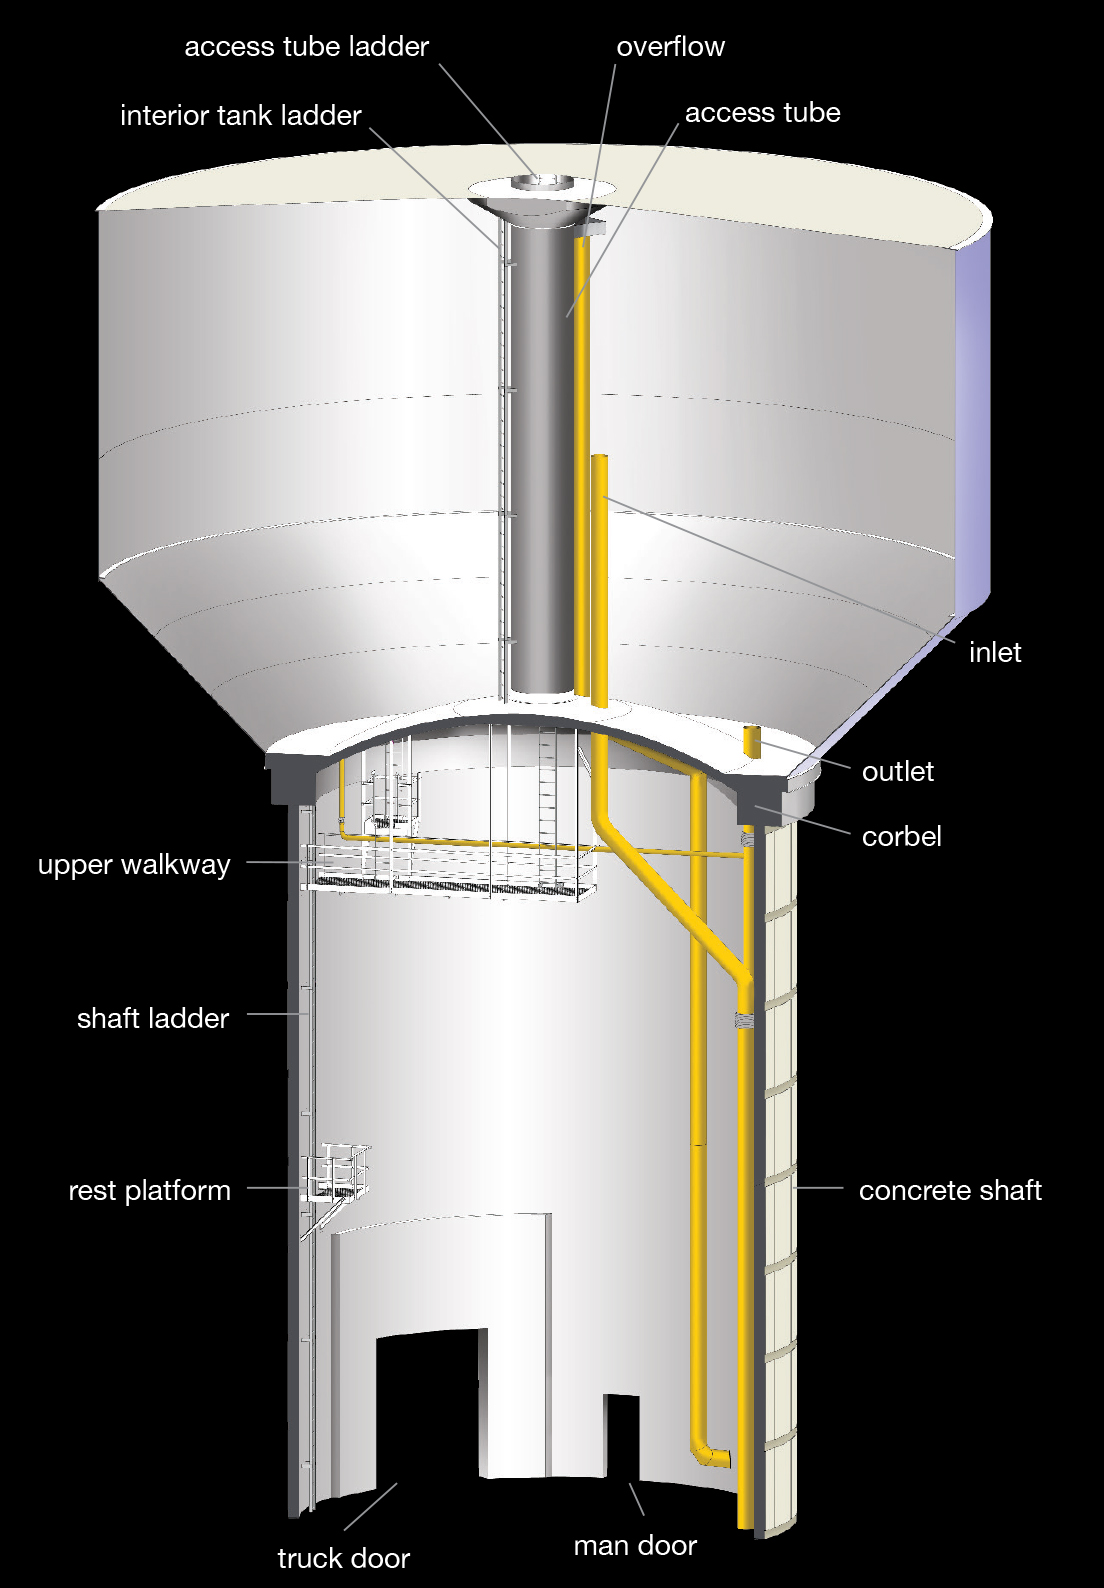 Composite Tank Cutaway on Zone Valve Diagram